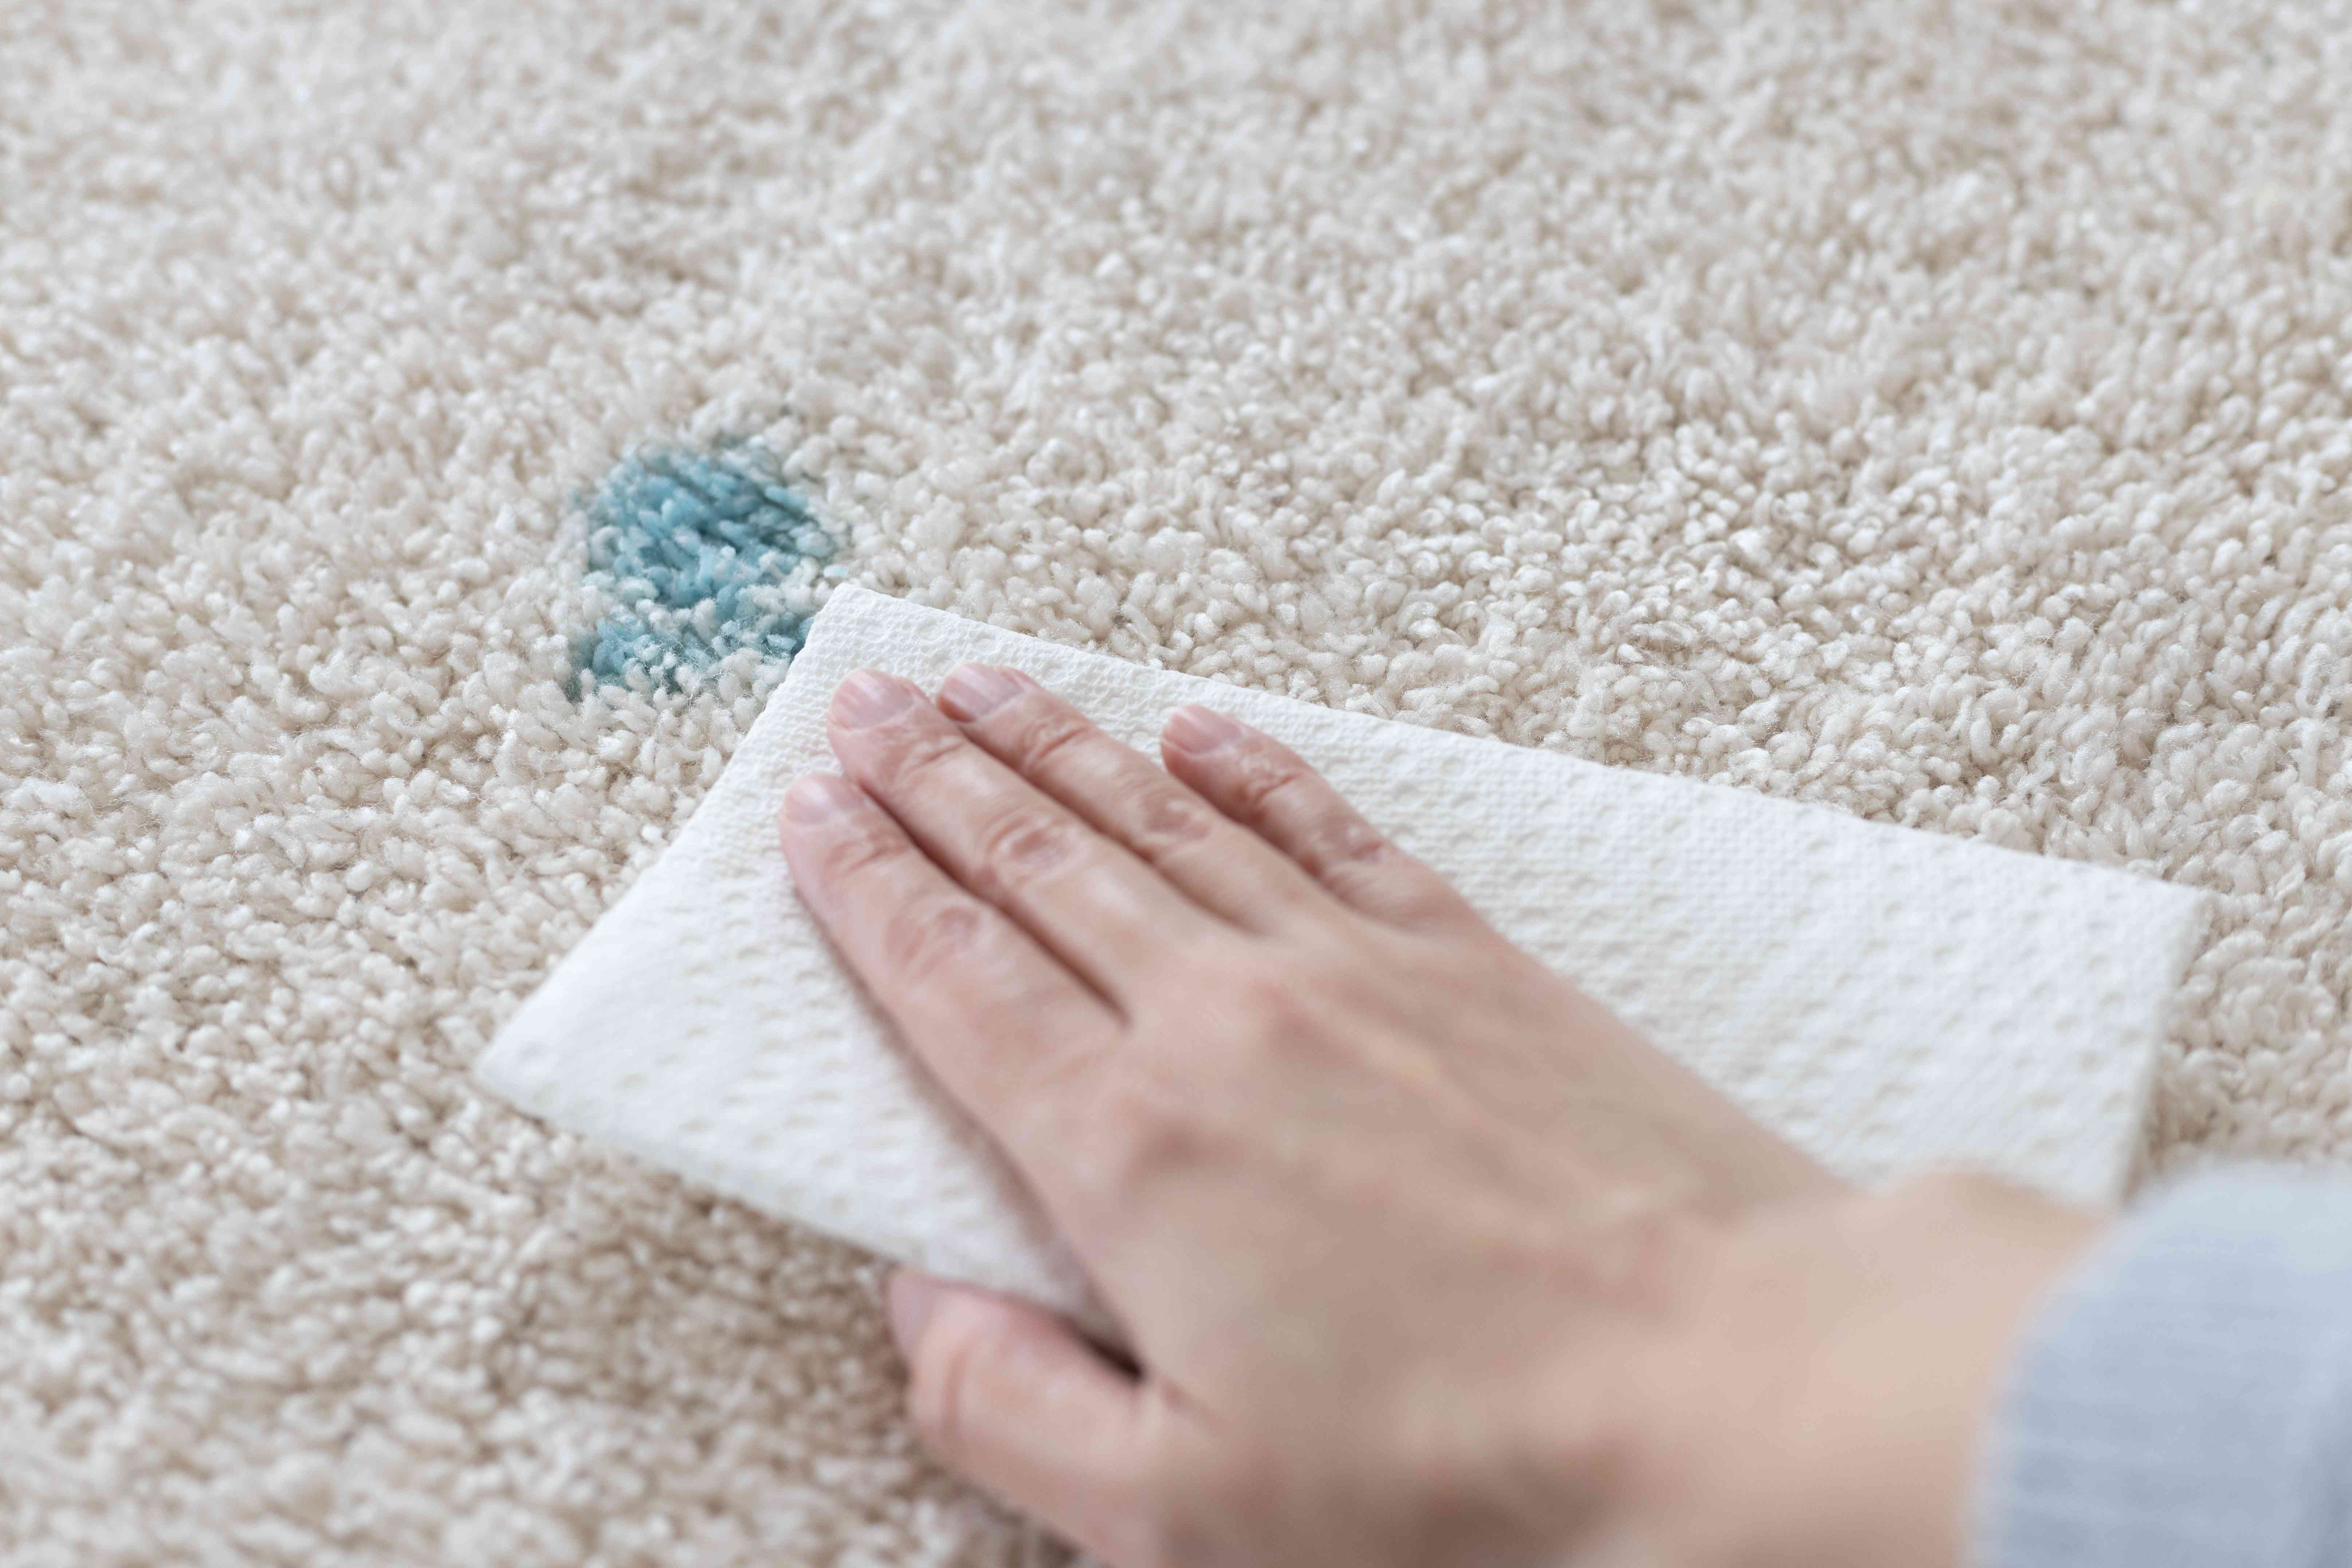 Carpet stained with blue easter egg dye blotted by white paper towel